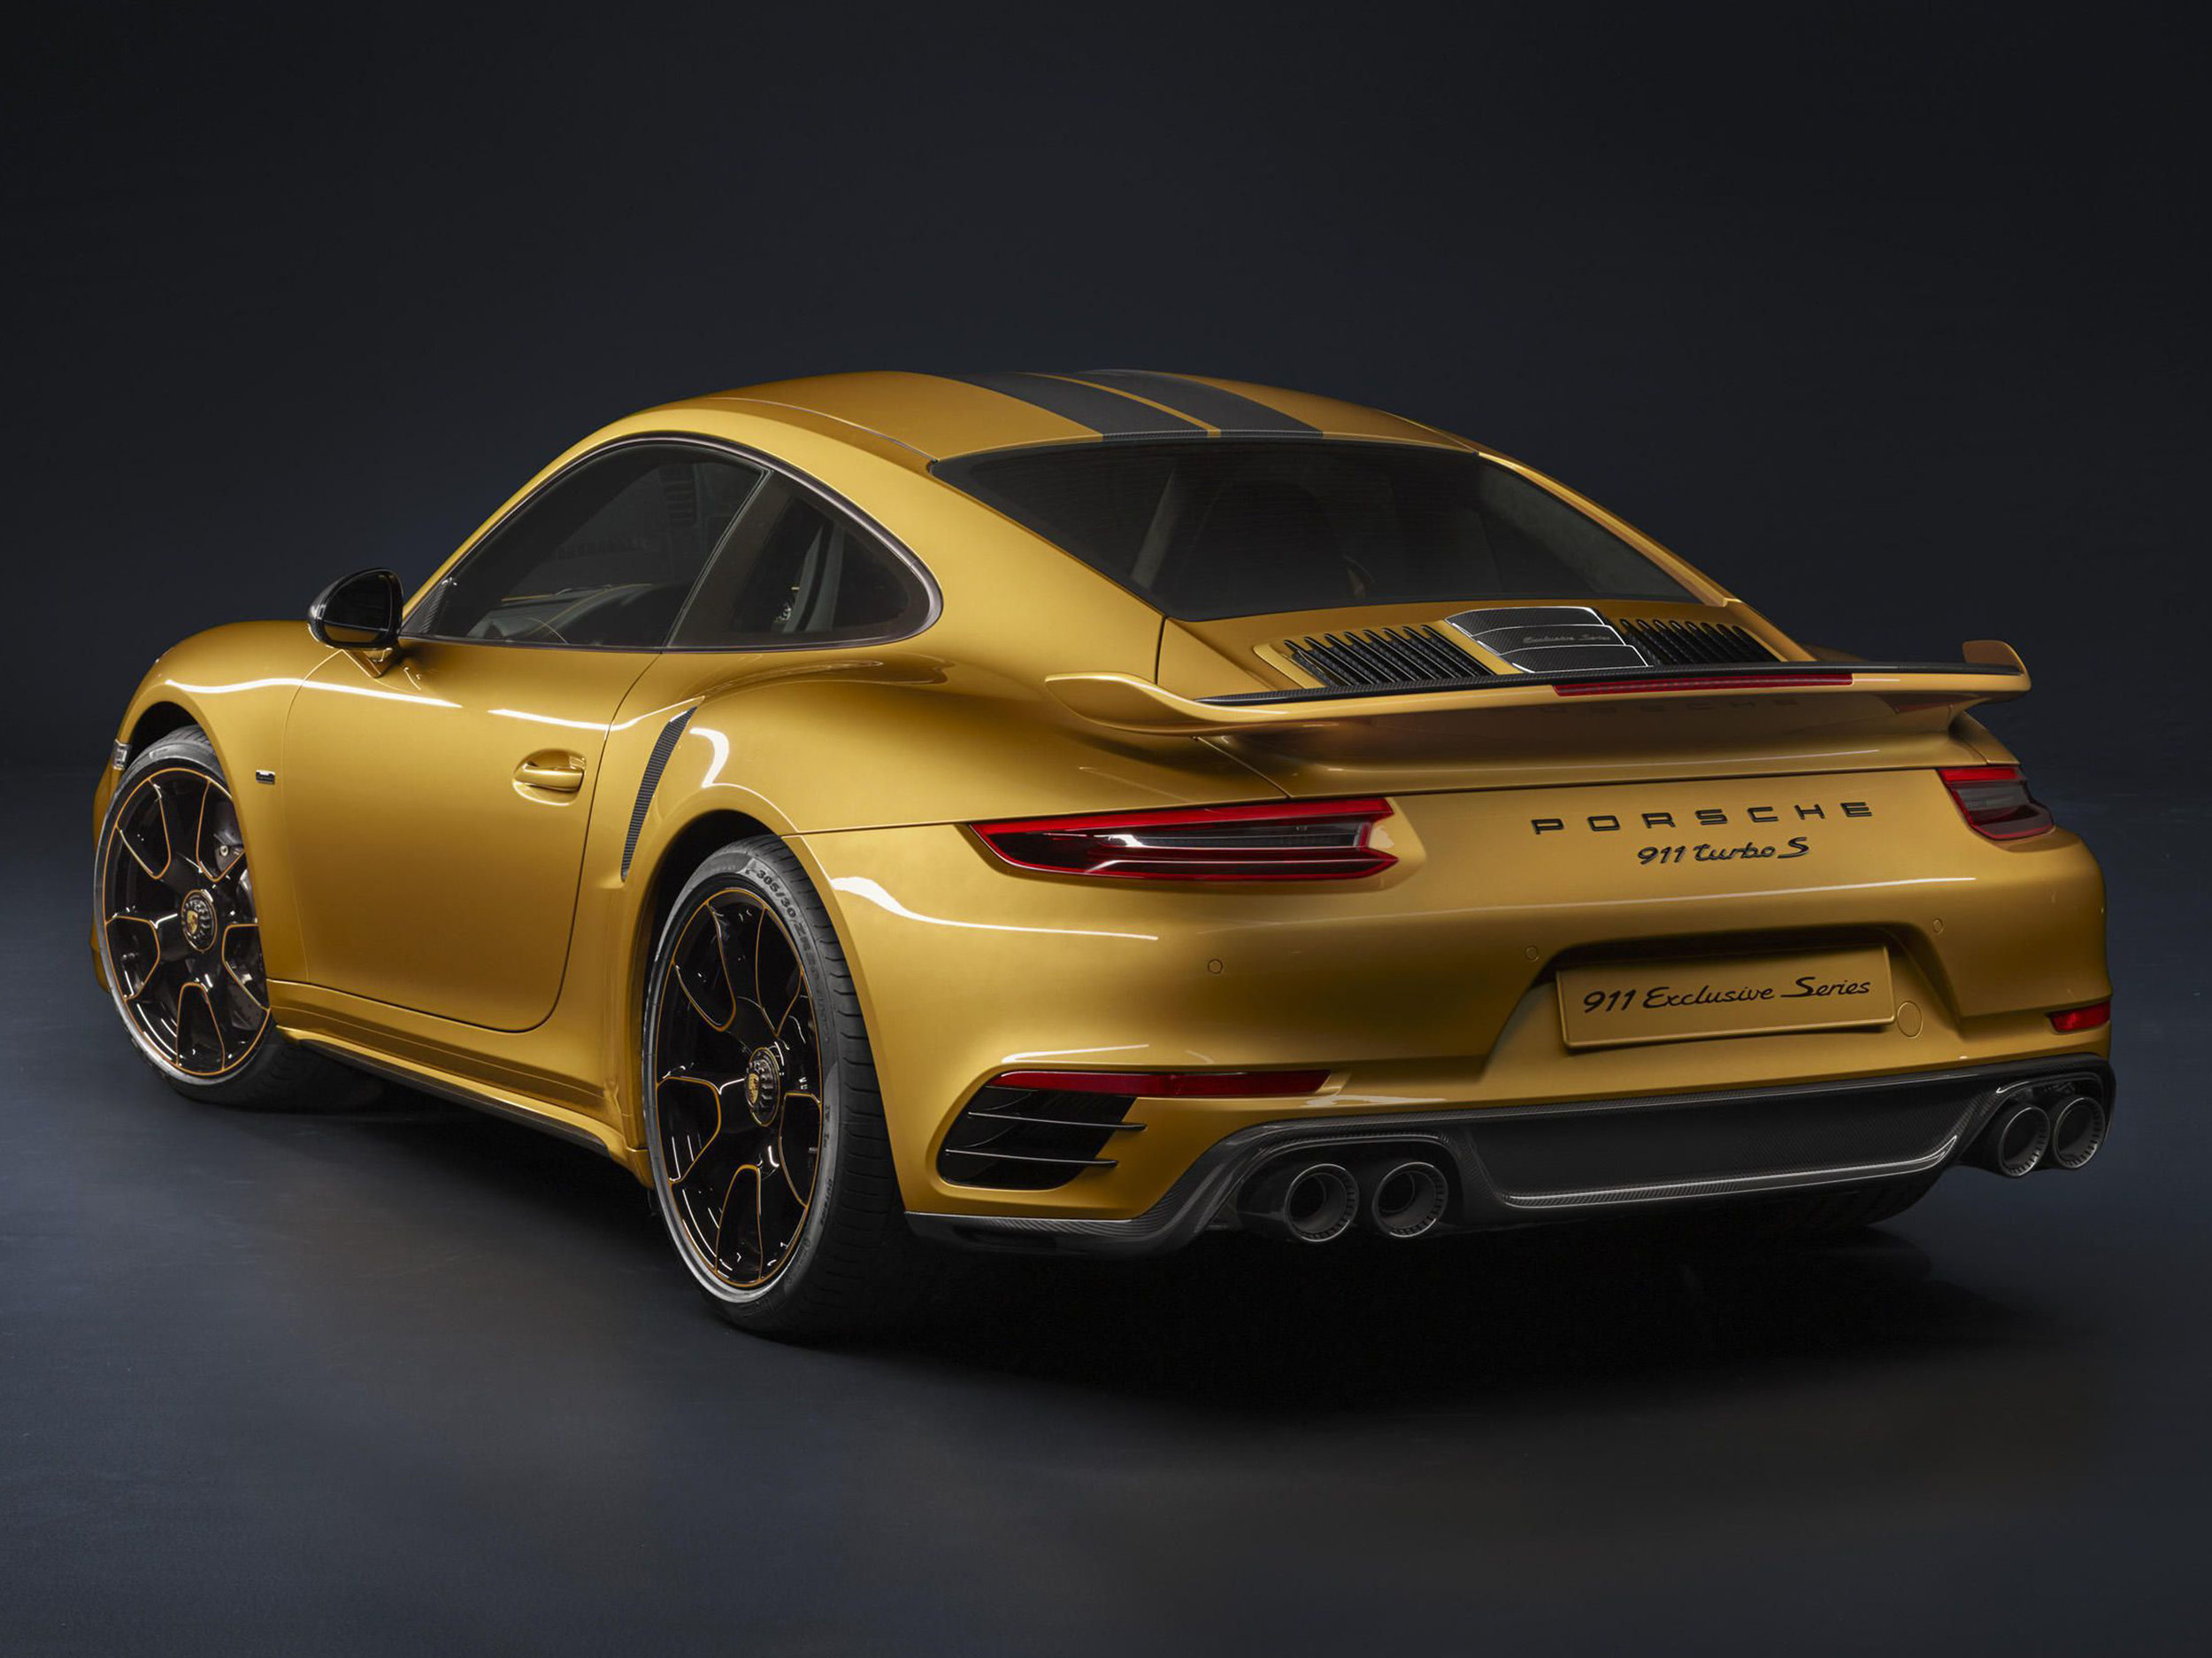 2018-porsche-911-turbo-s-exclusive-3.jpg